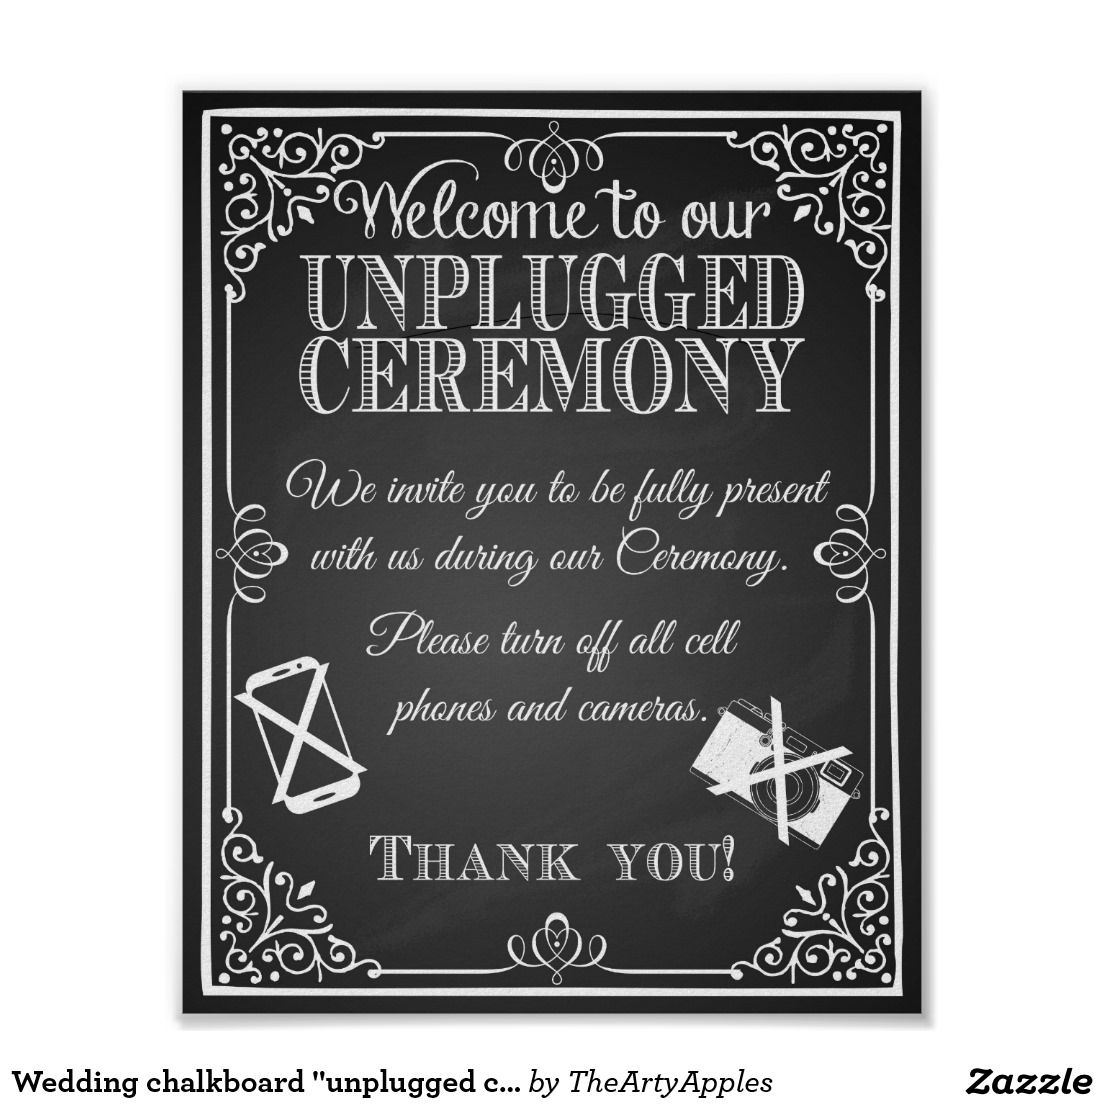 "Wedding chalkboard ""unplugged ceremony"" Print"